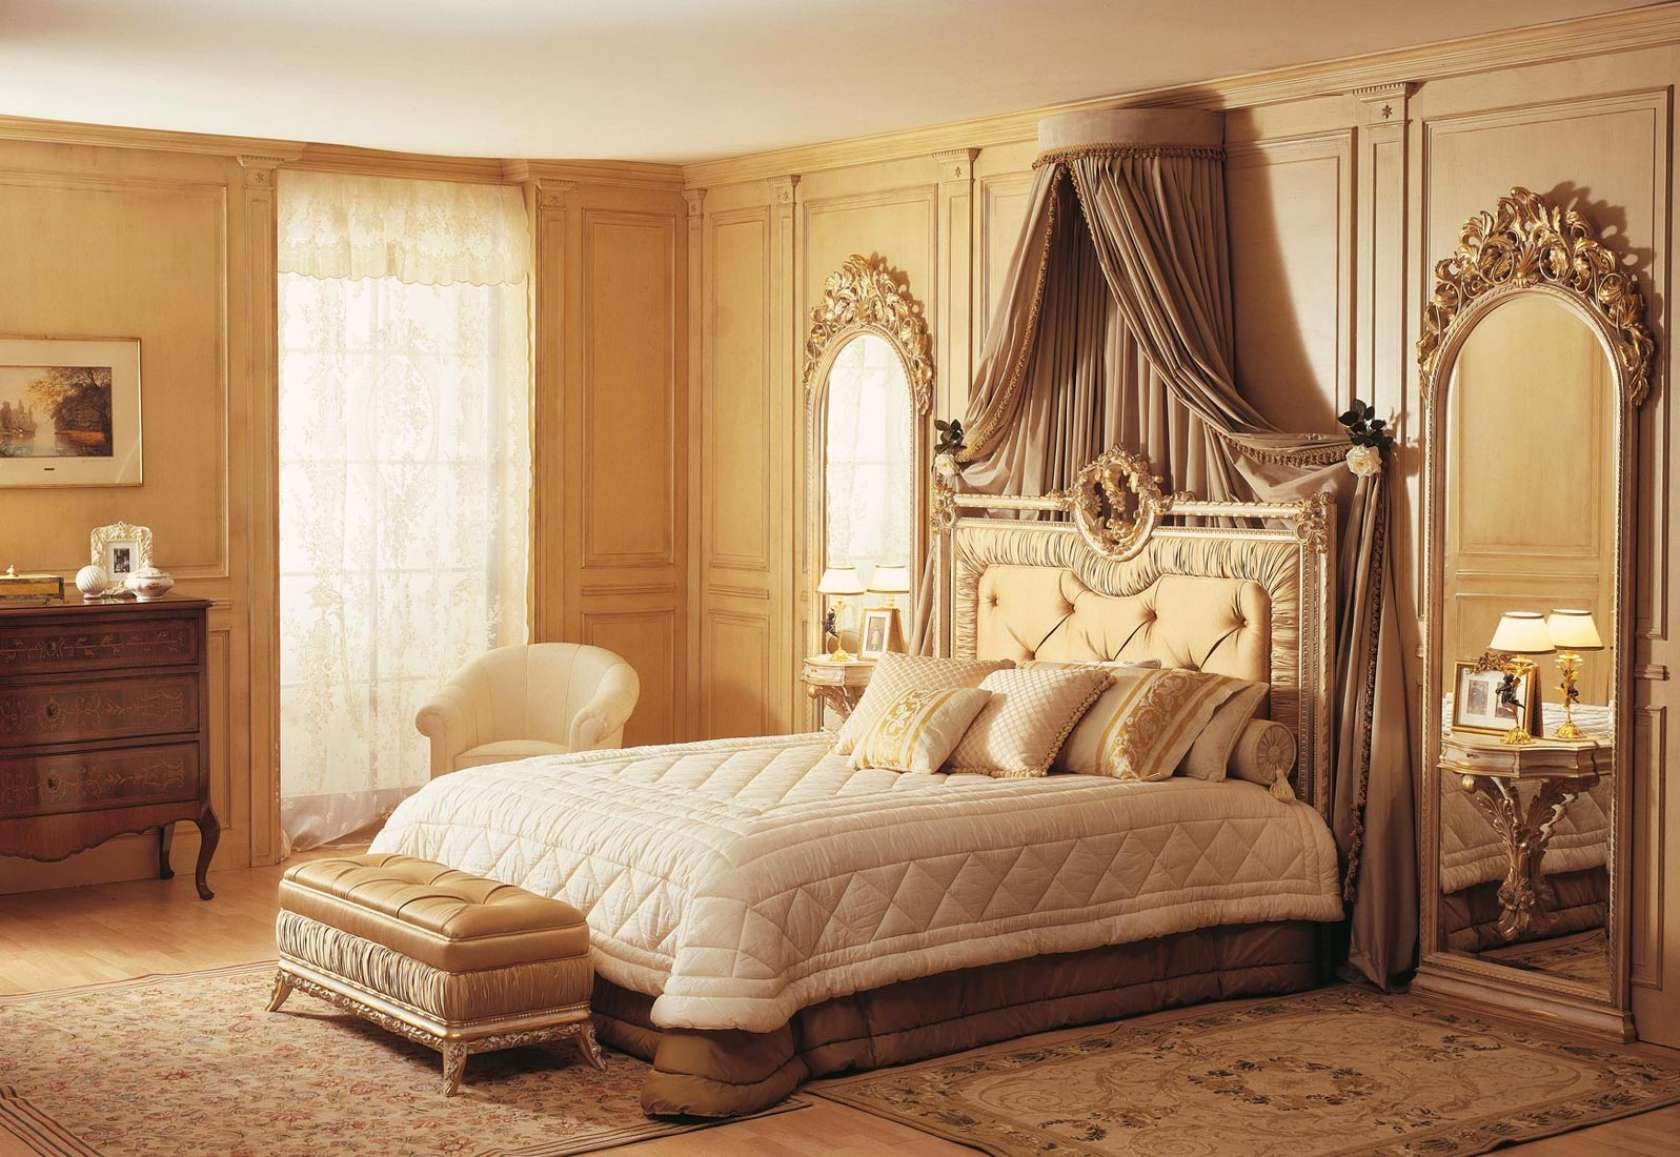 Classic bedroom furniture Louvre